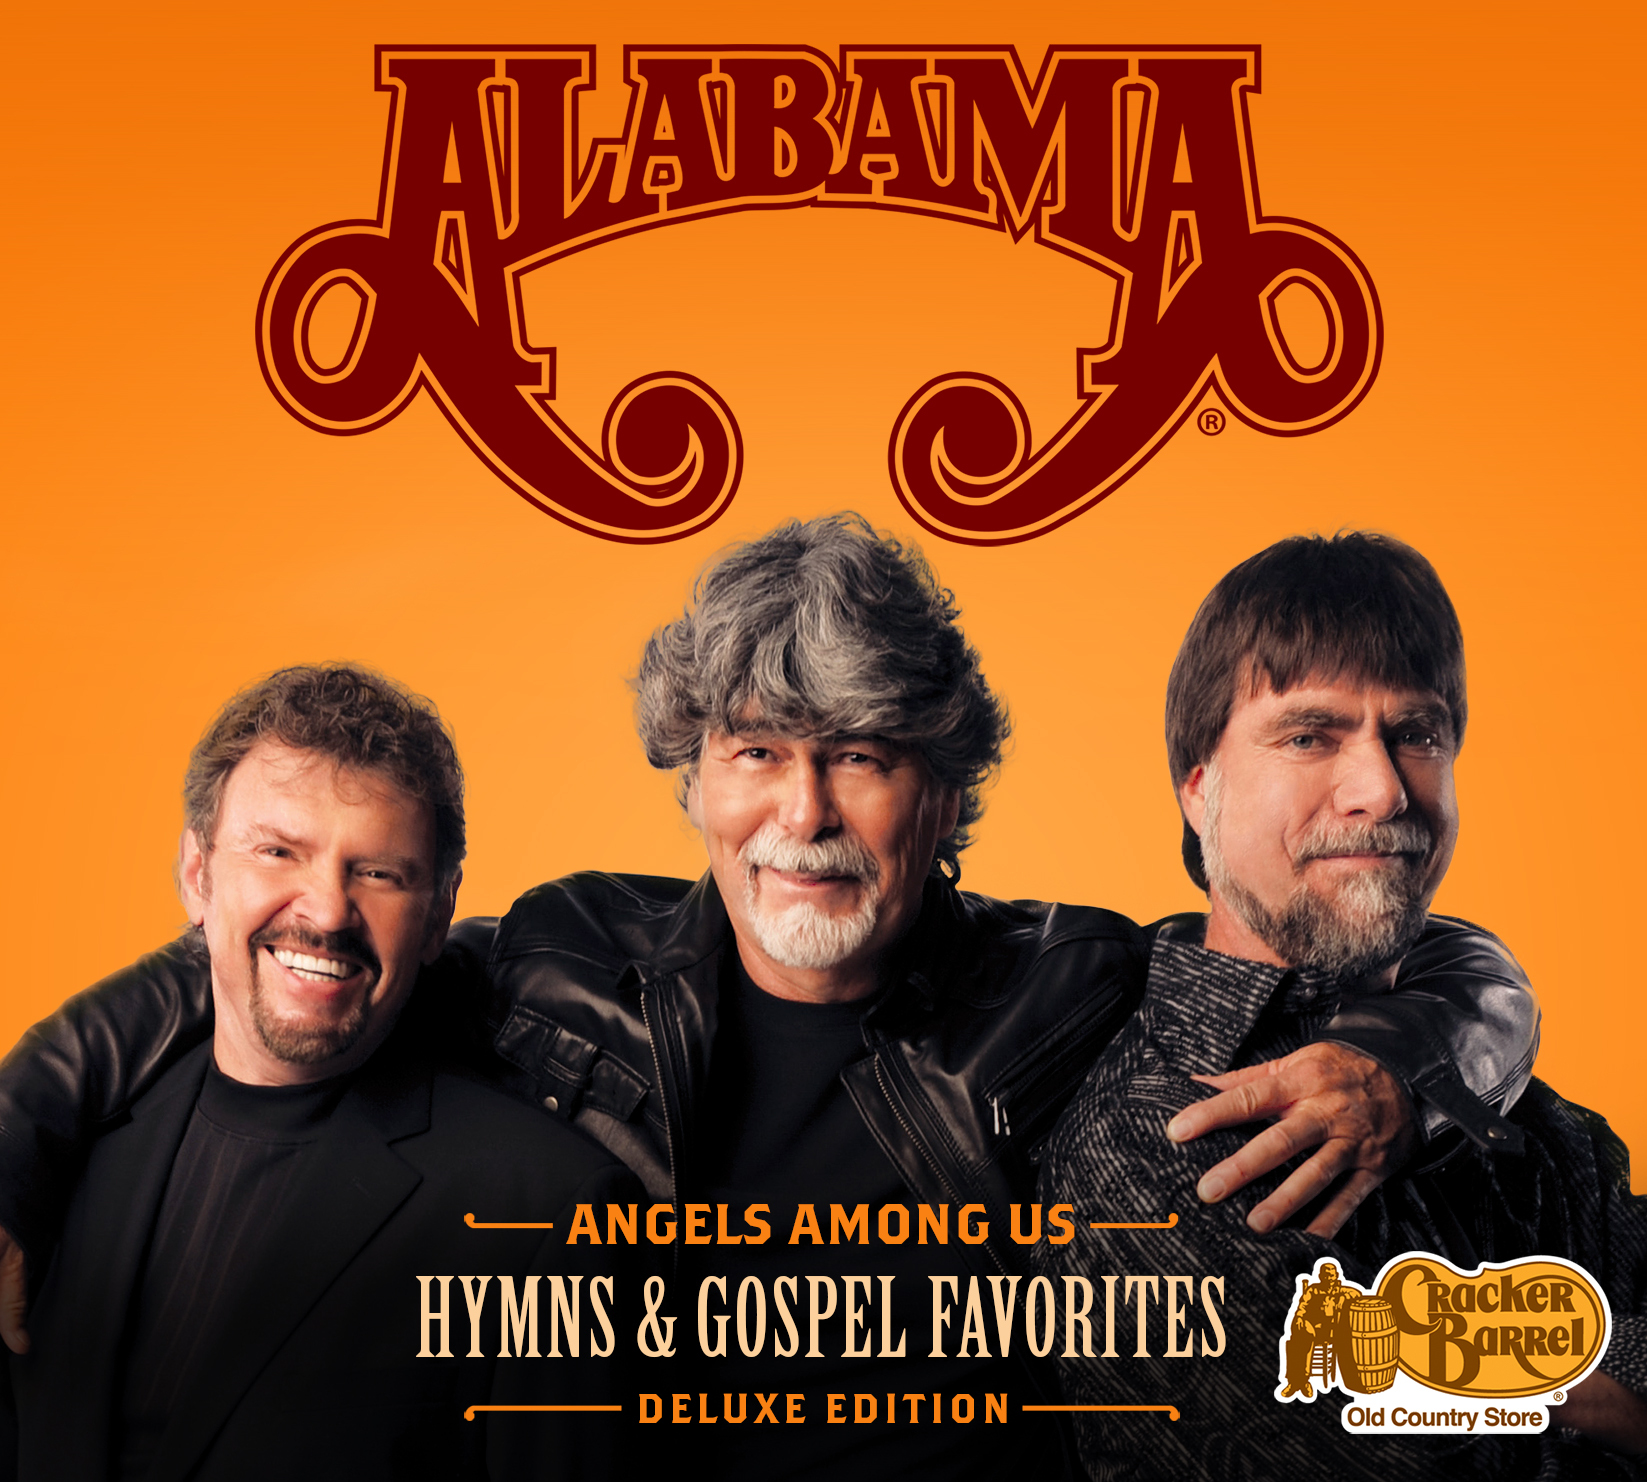 Alabama - Angels Among Us: Hymns & Gospel Favorites: Deluxe CD, Available Sept. 8  (Photo: Business Wire)